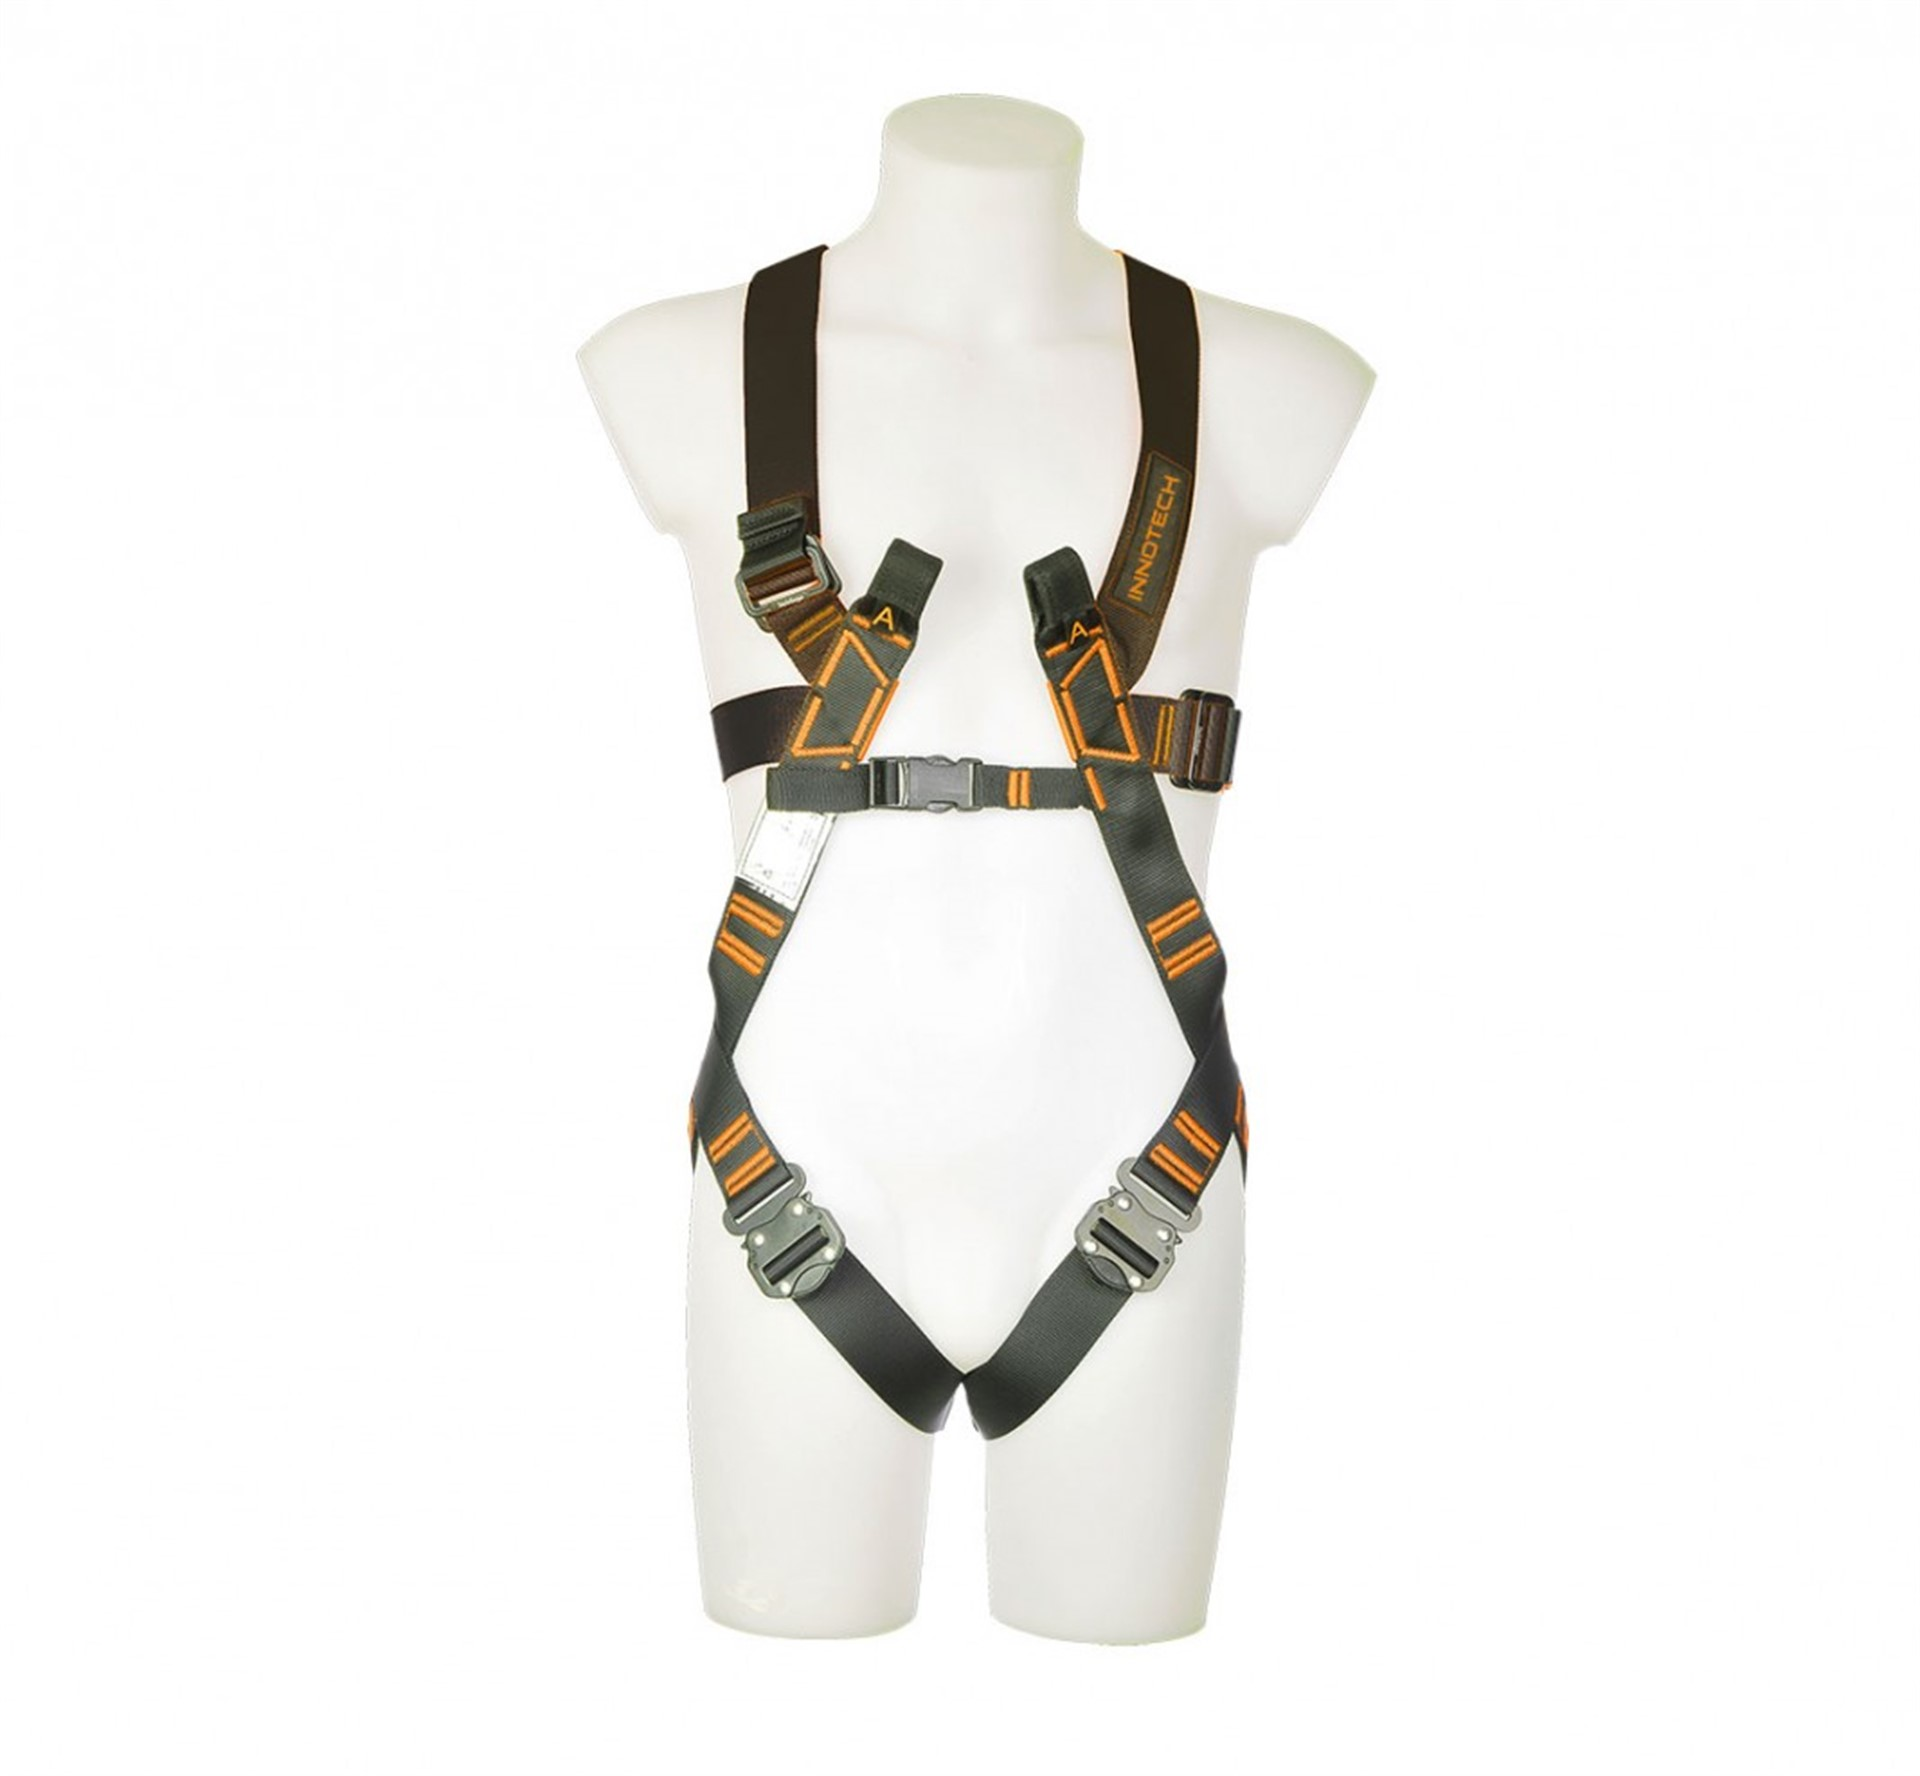 Safety Harness Psa String 1 Products For Life Lines Prodotti Per Linee Vita